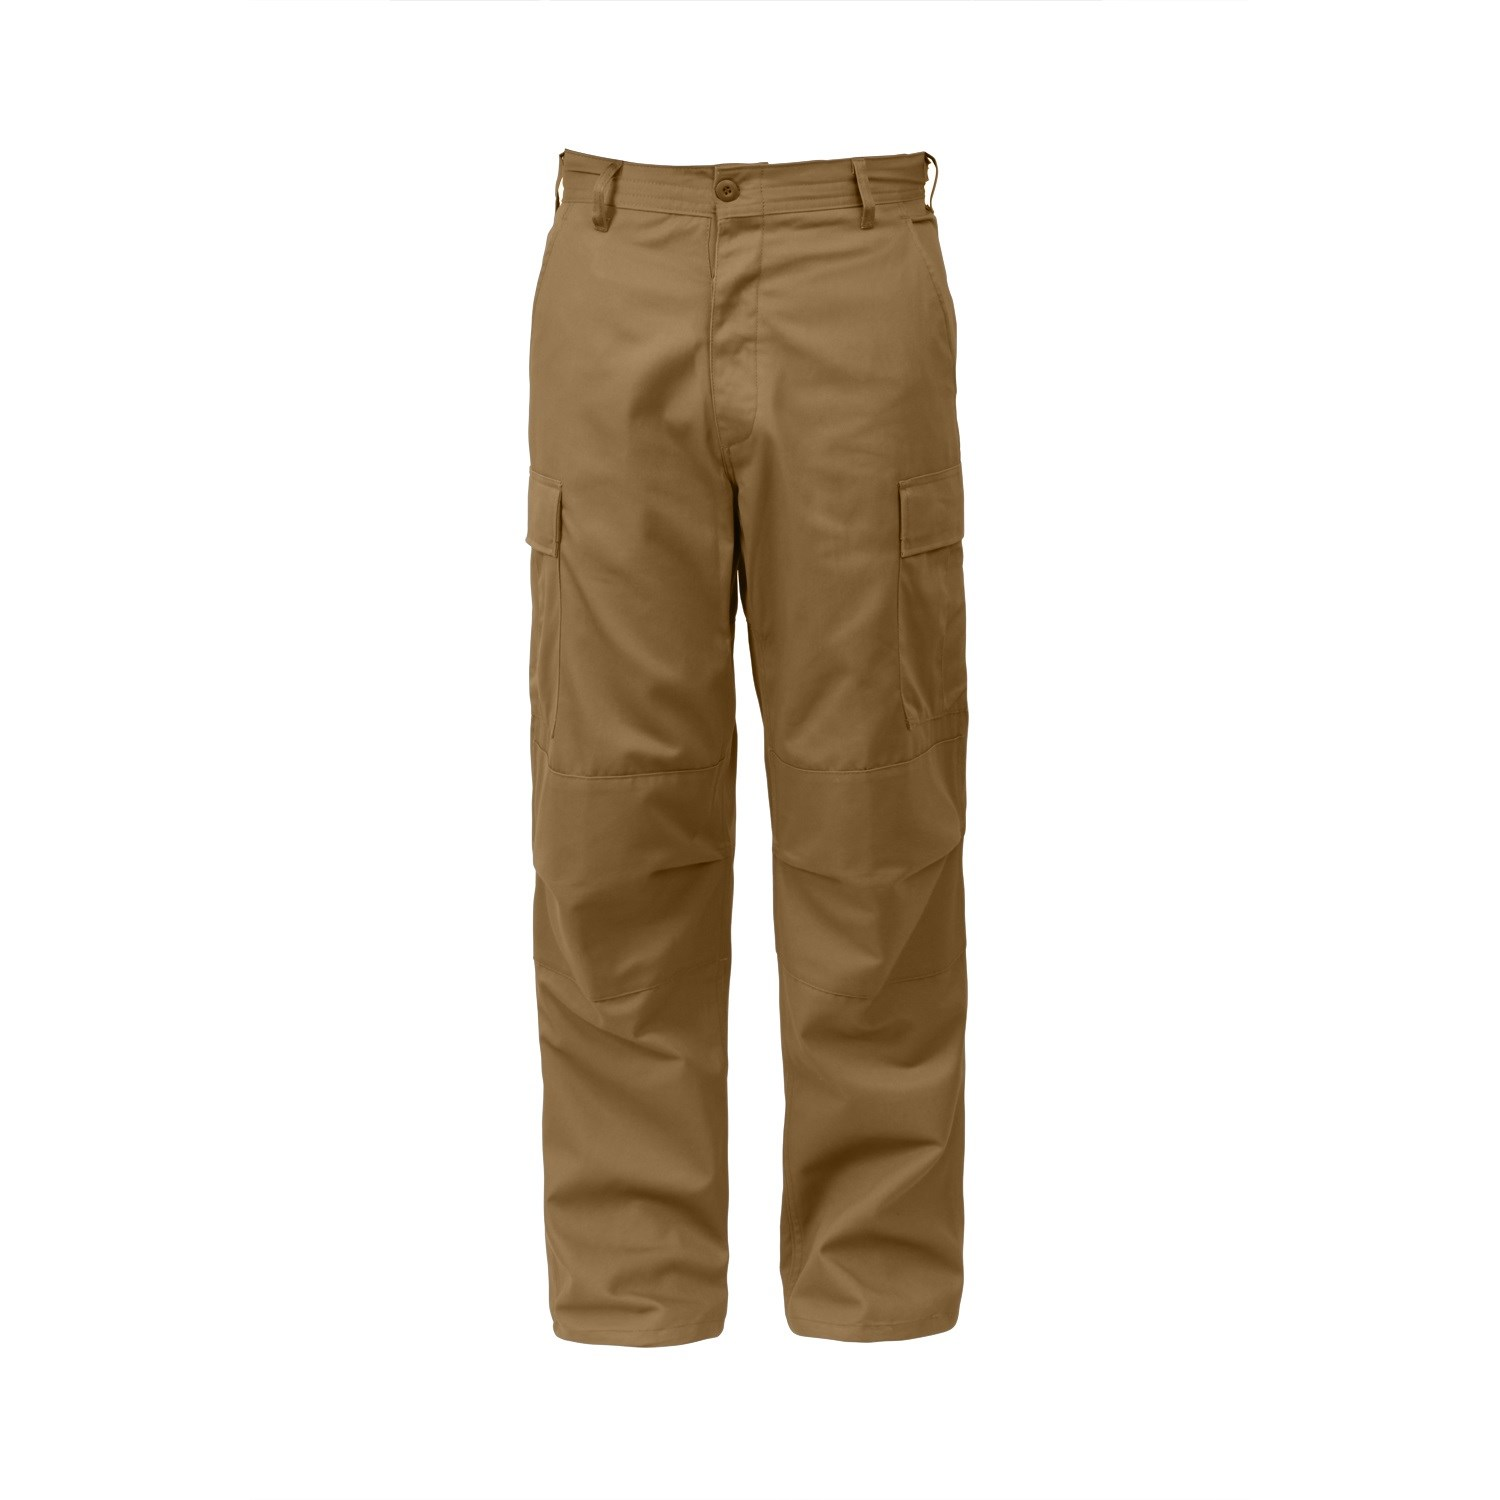 Nohavice BDU RELAXED ZIPPER FLY COYOTE BROWN